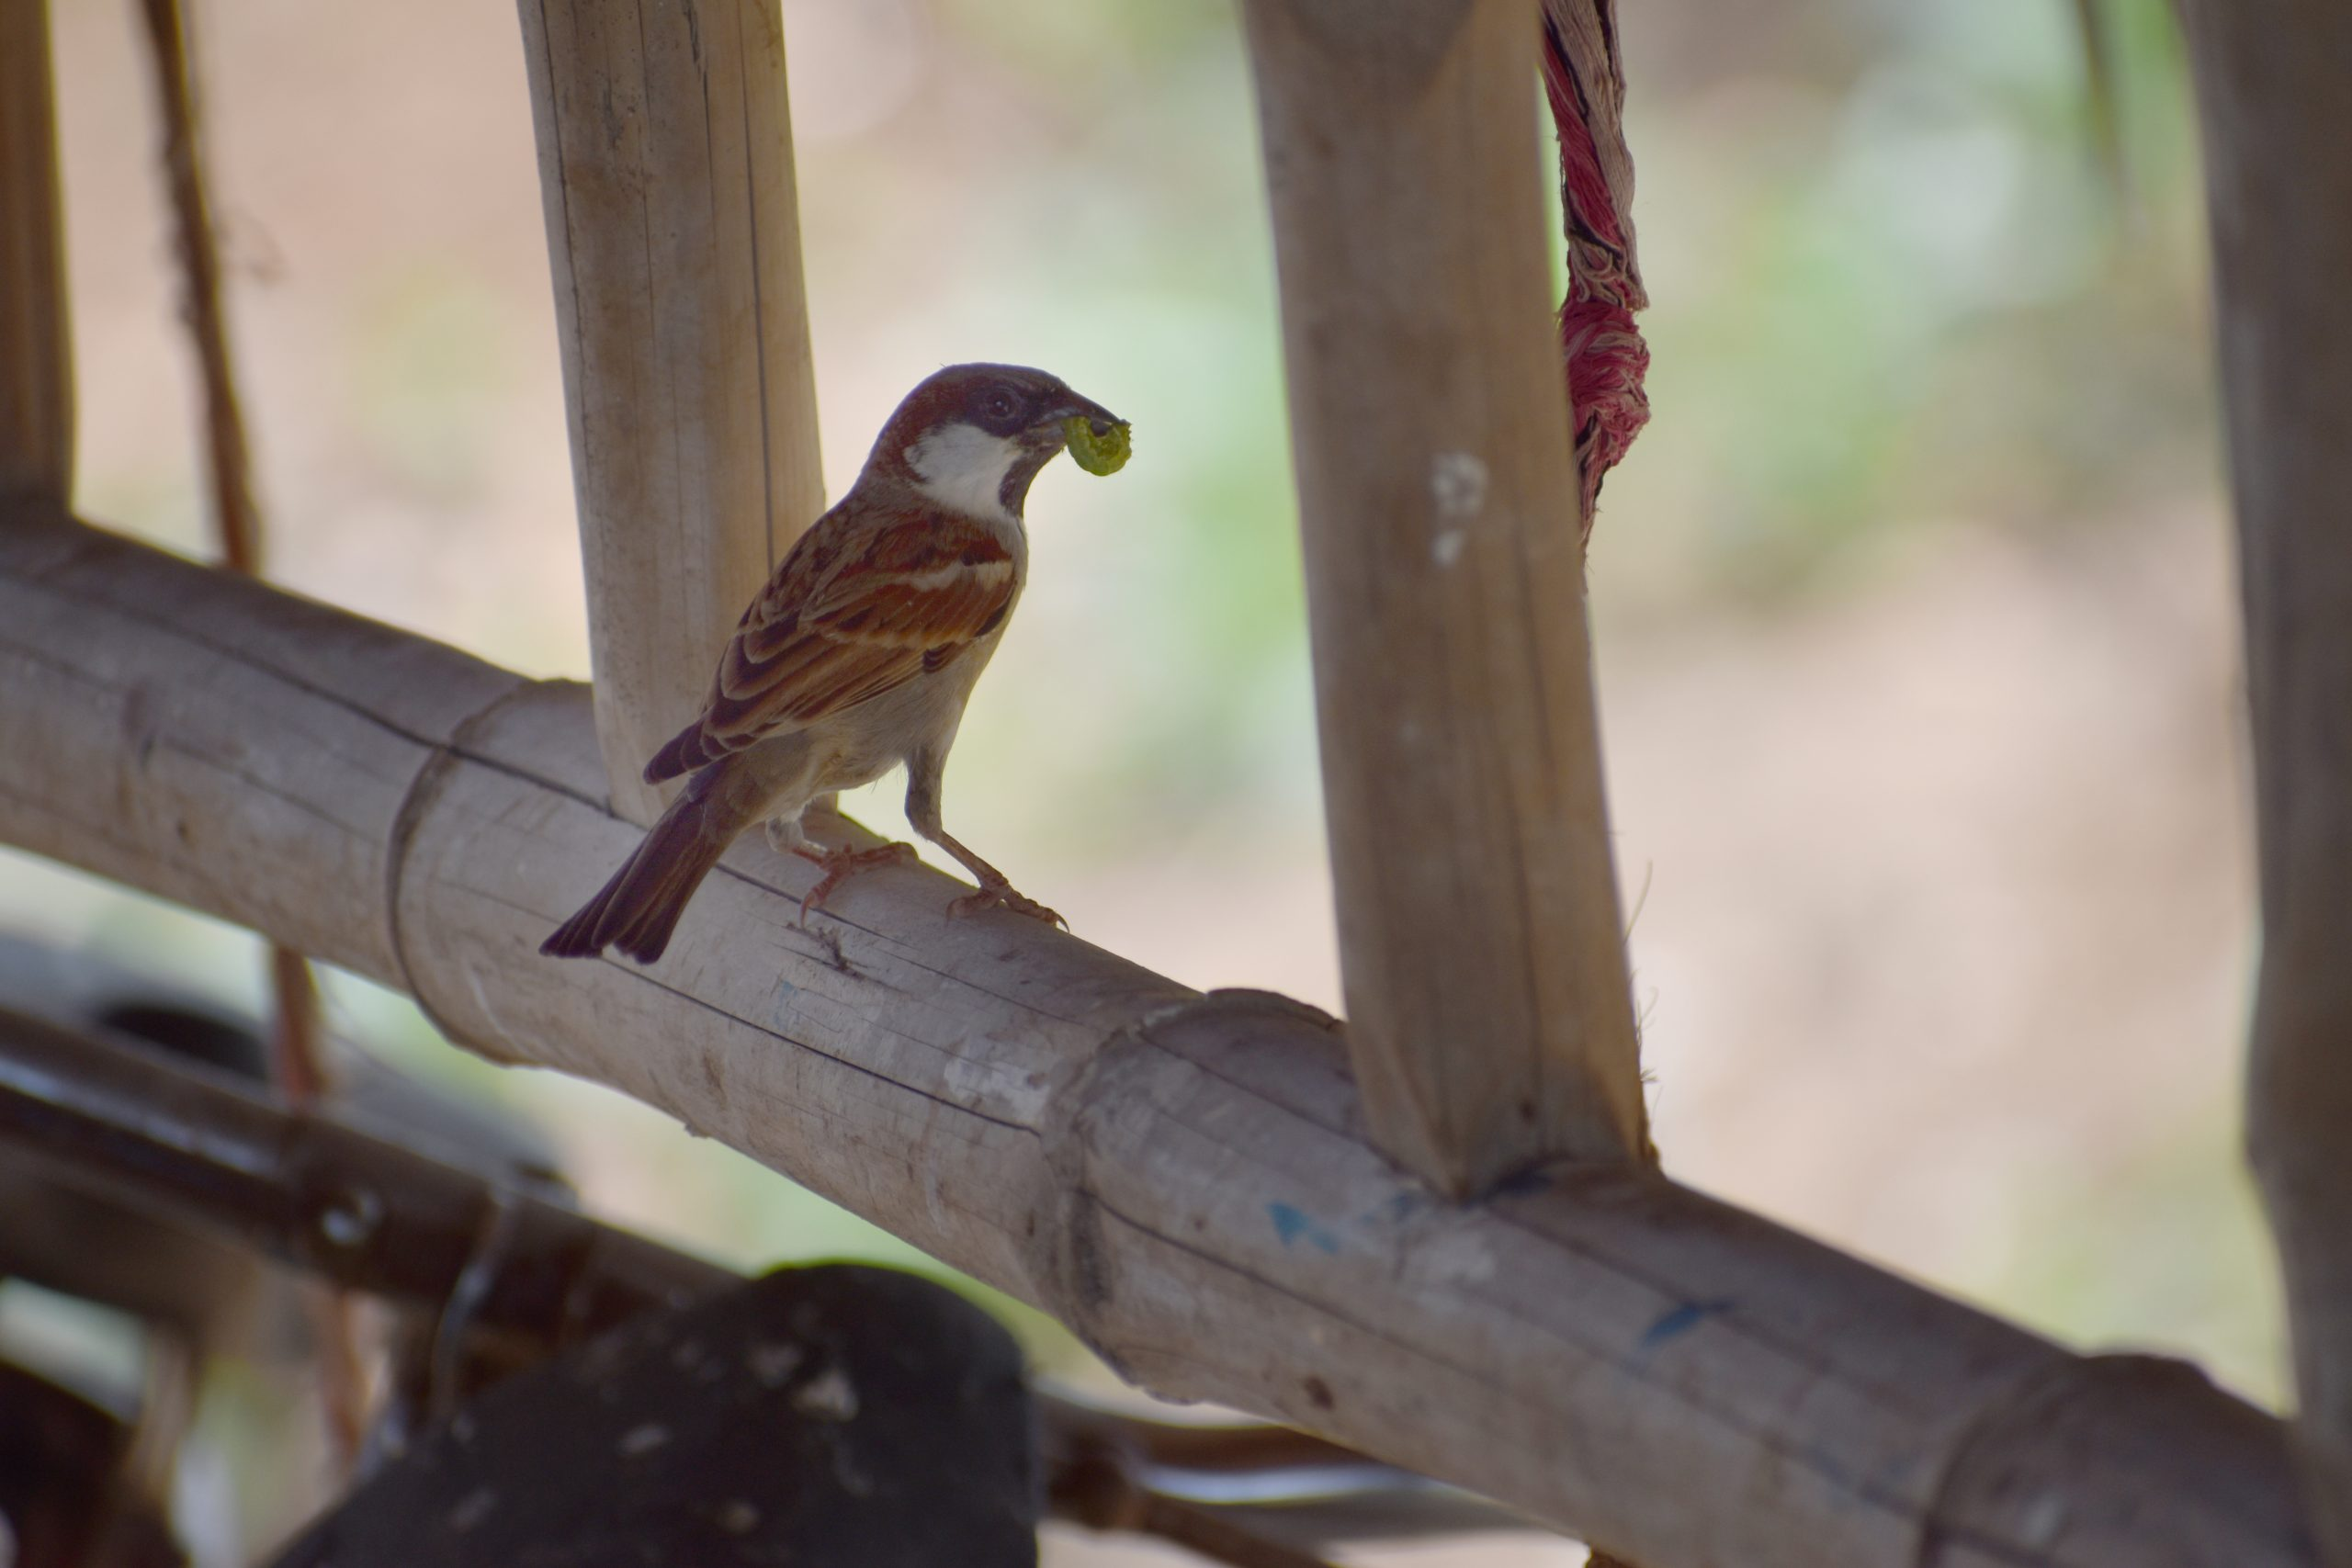 Sparrow sitting on the wood